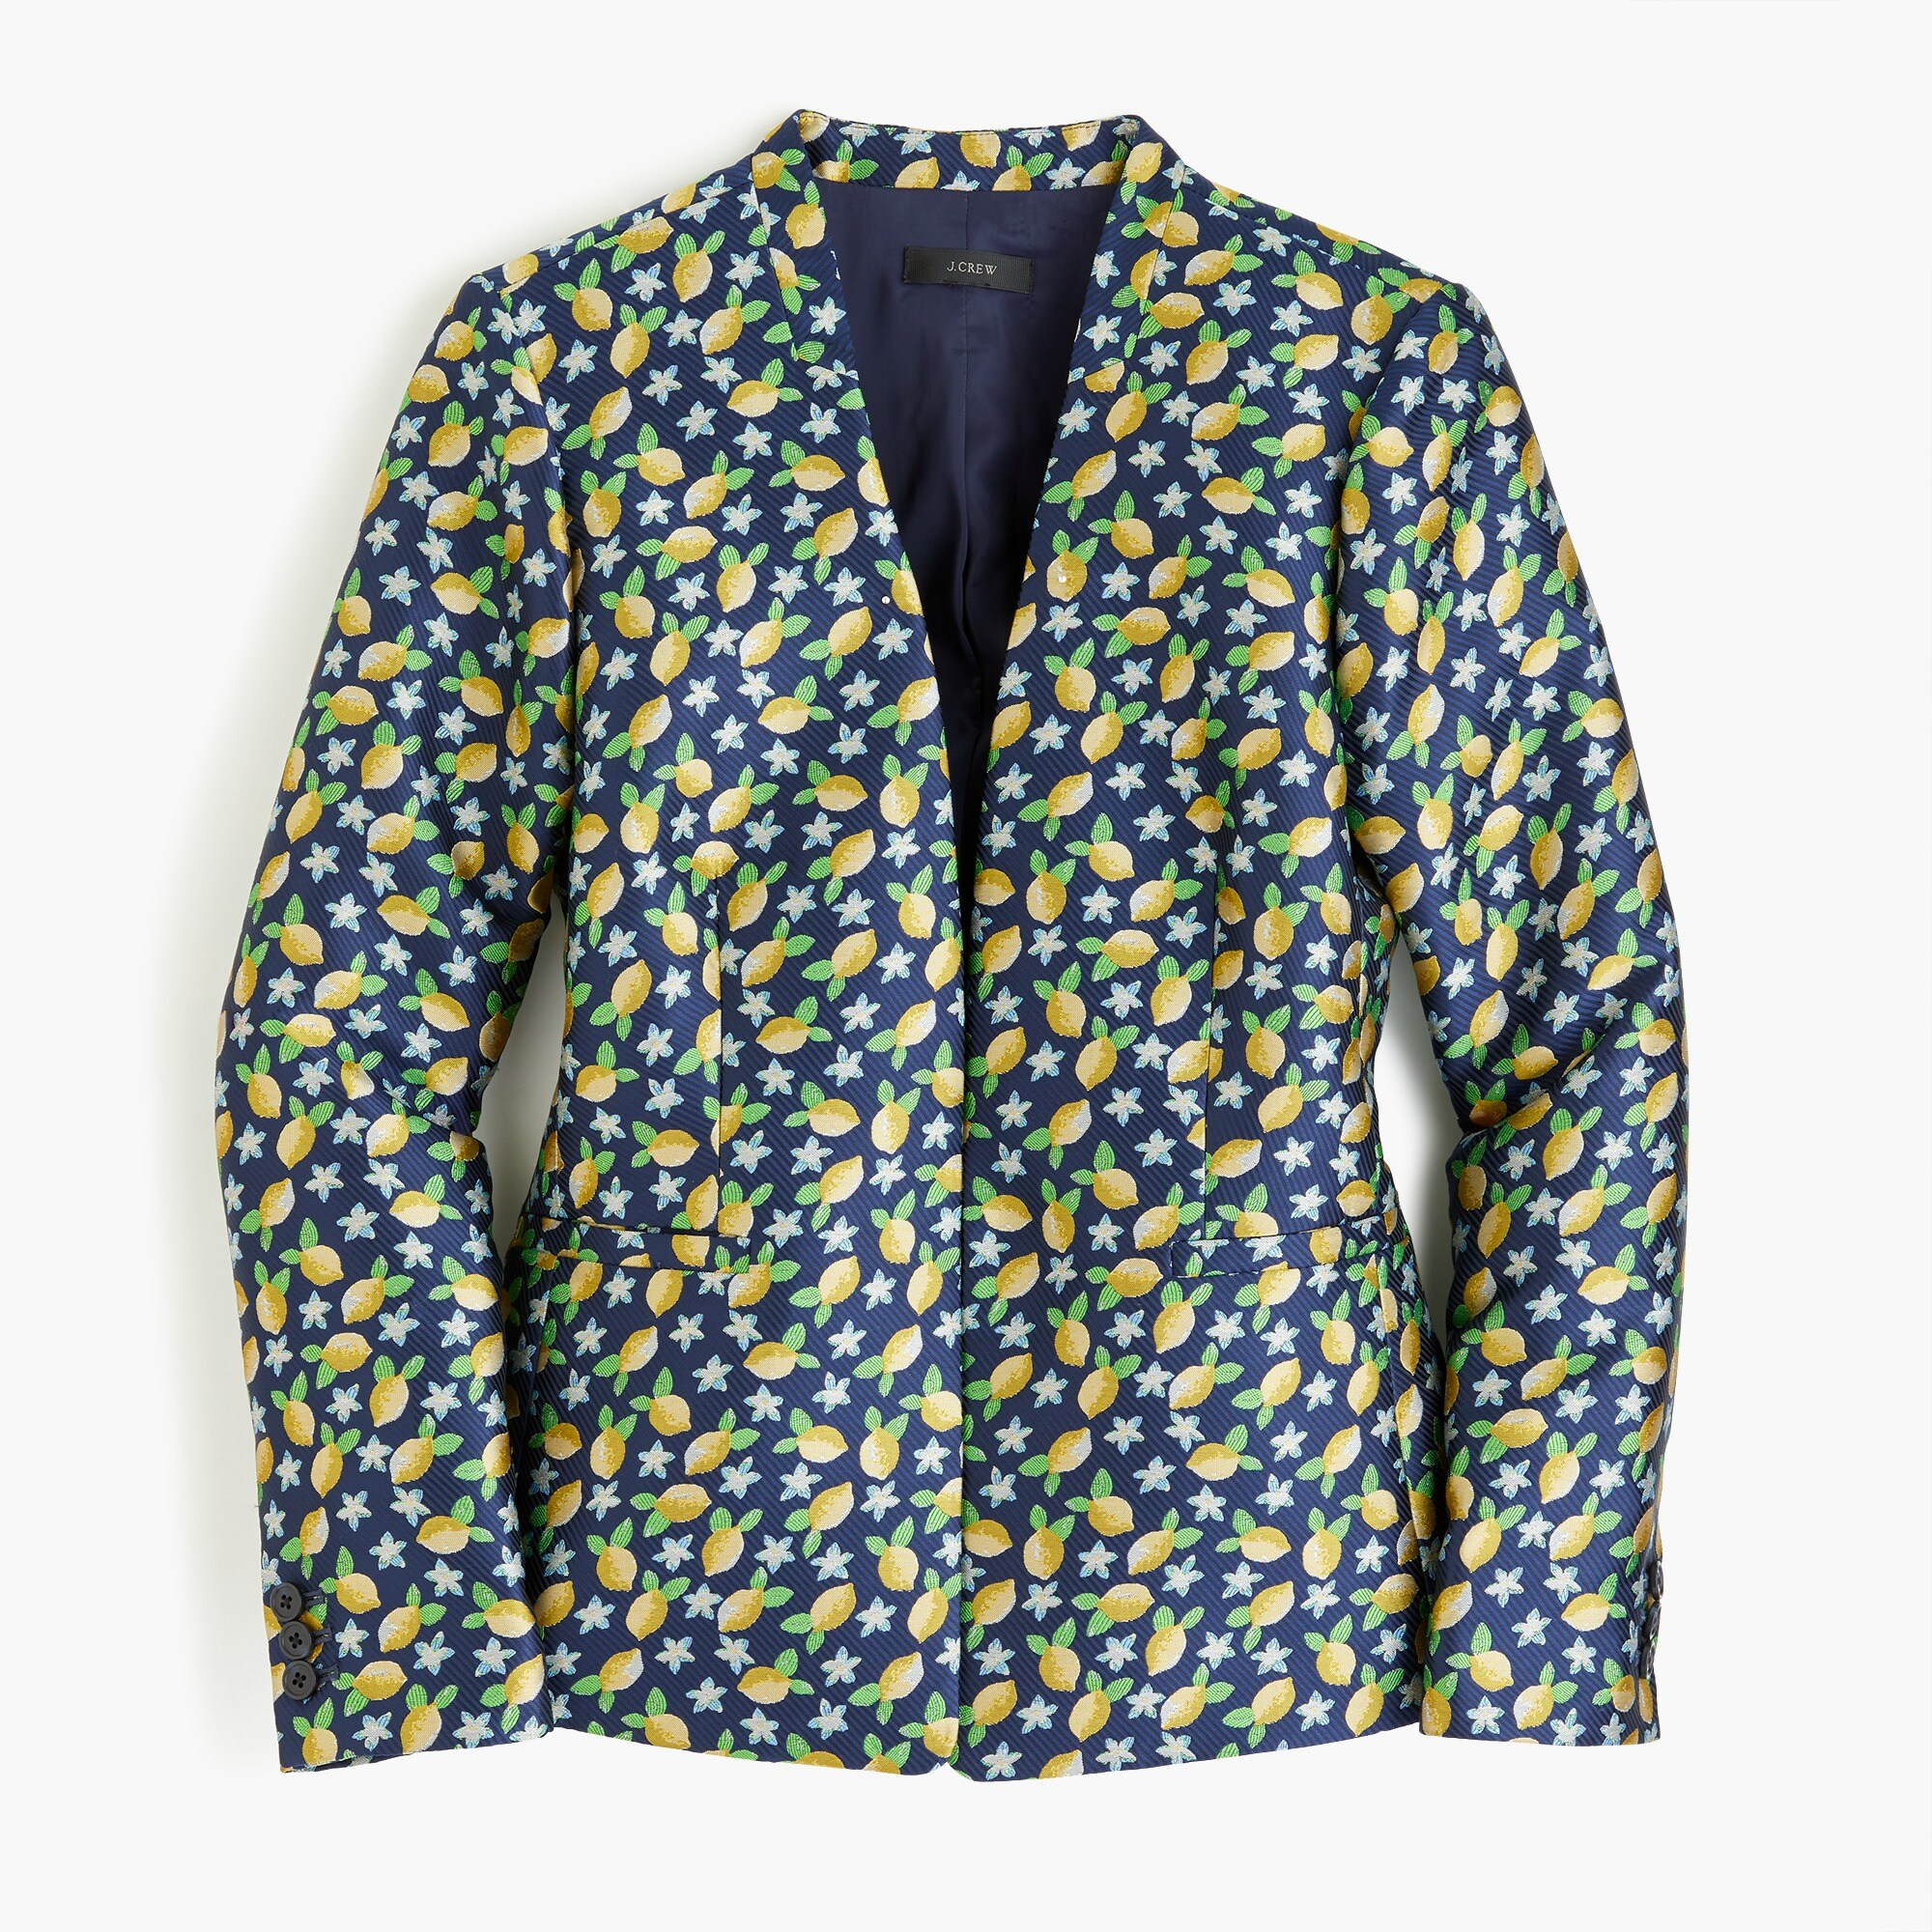 Going-out blazer in lemon jacquard